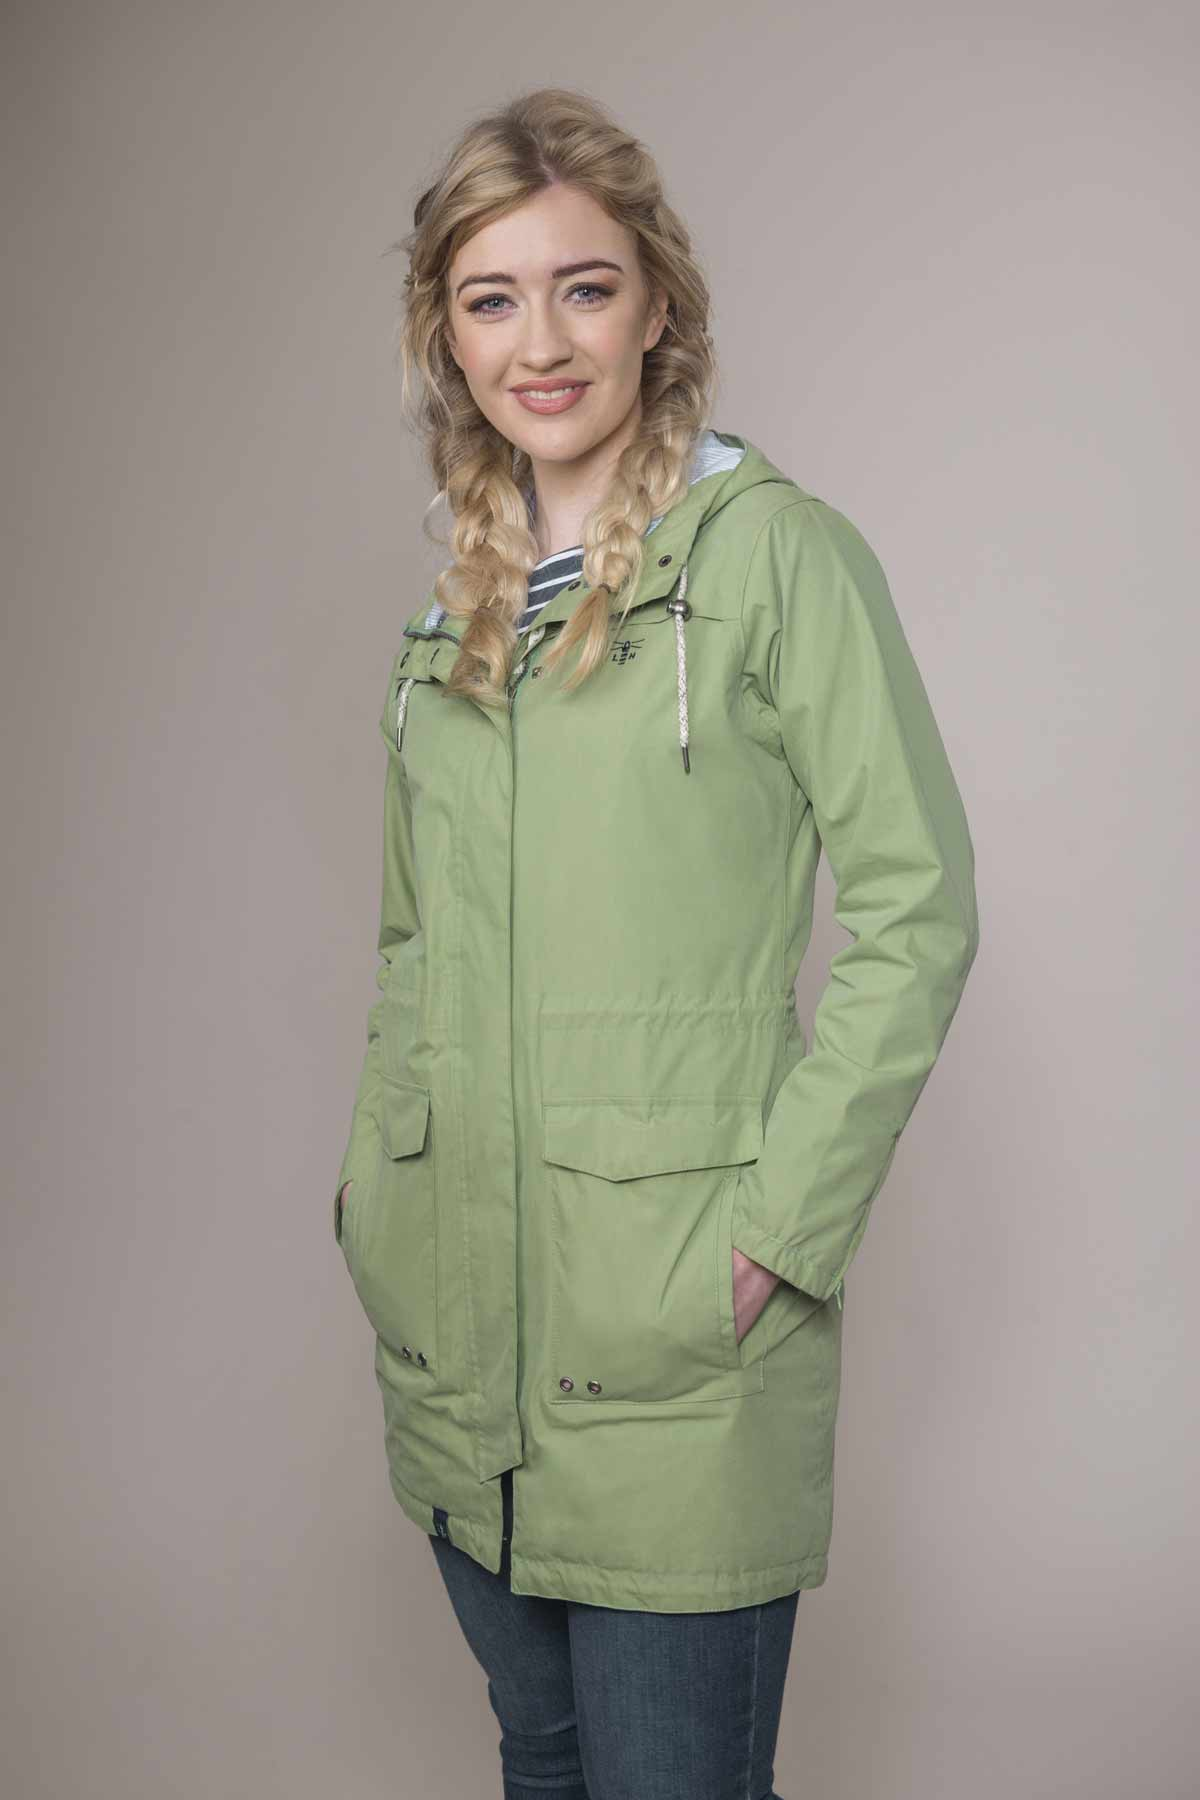 Lighthouse Paige pistachio women's waterproof parka